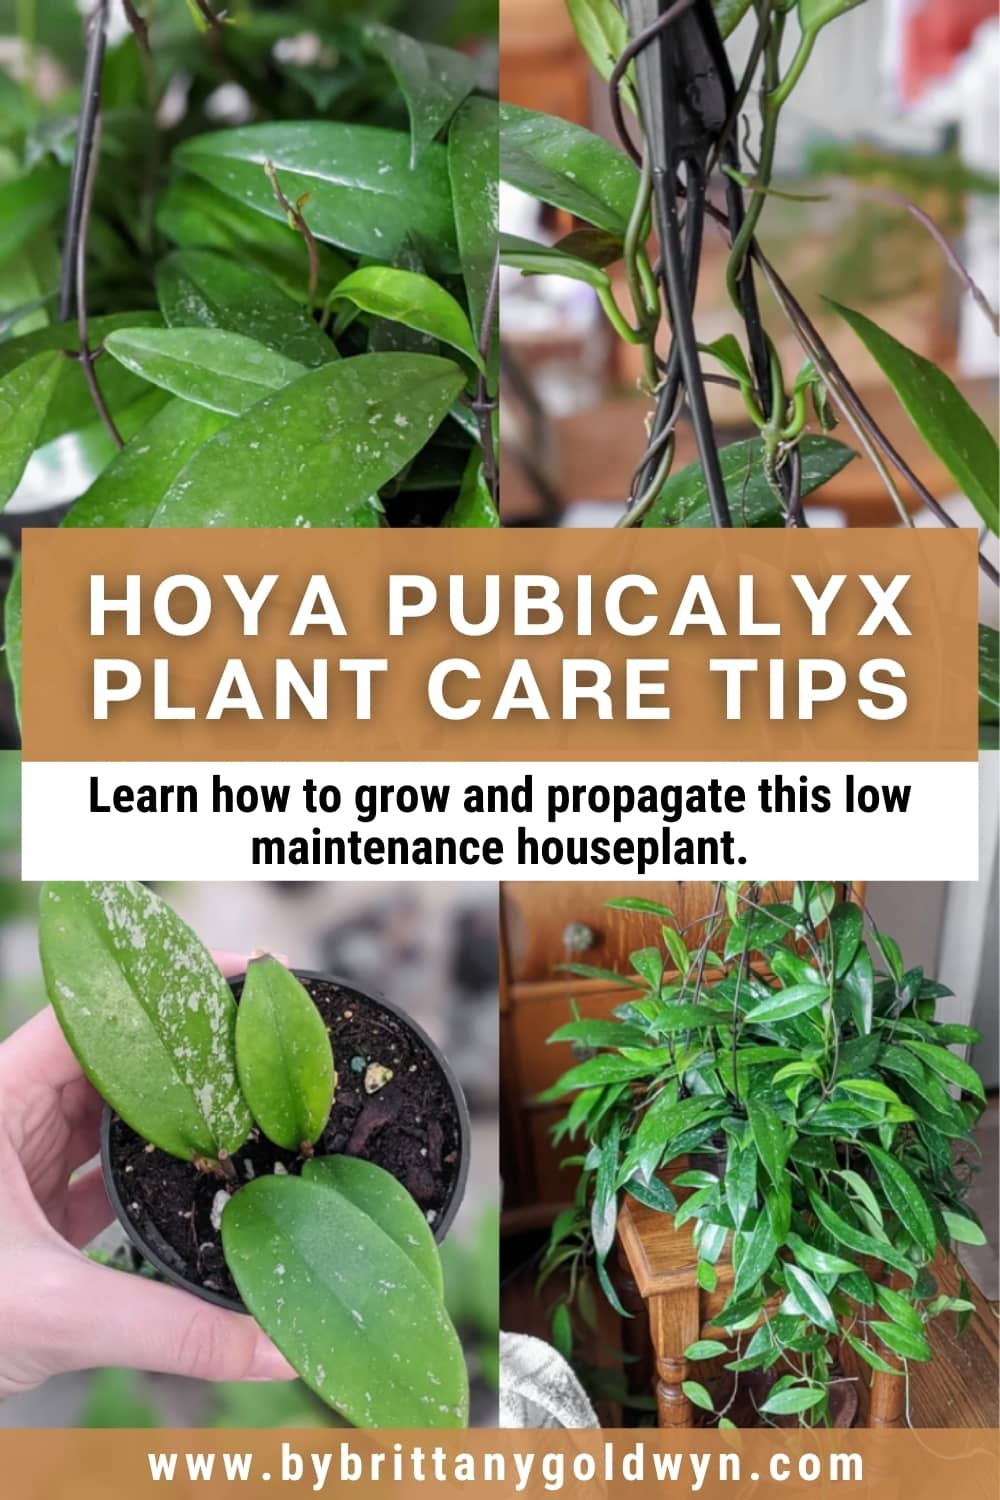 image collage of hoya pubicalyx plants with text overlay on plant care tips